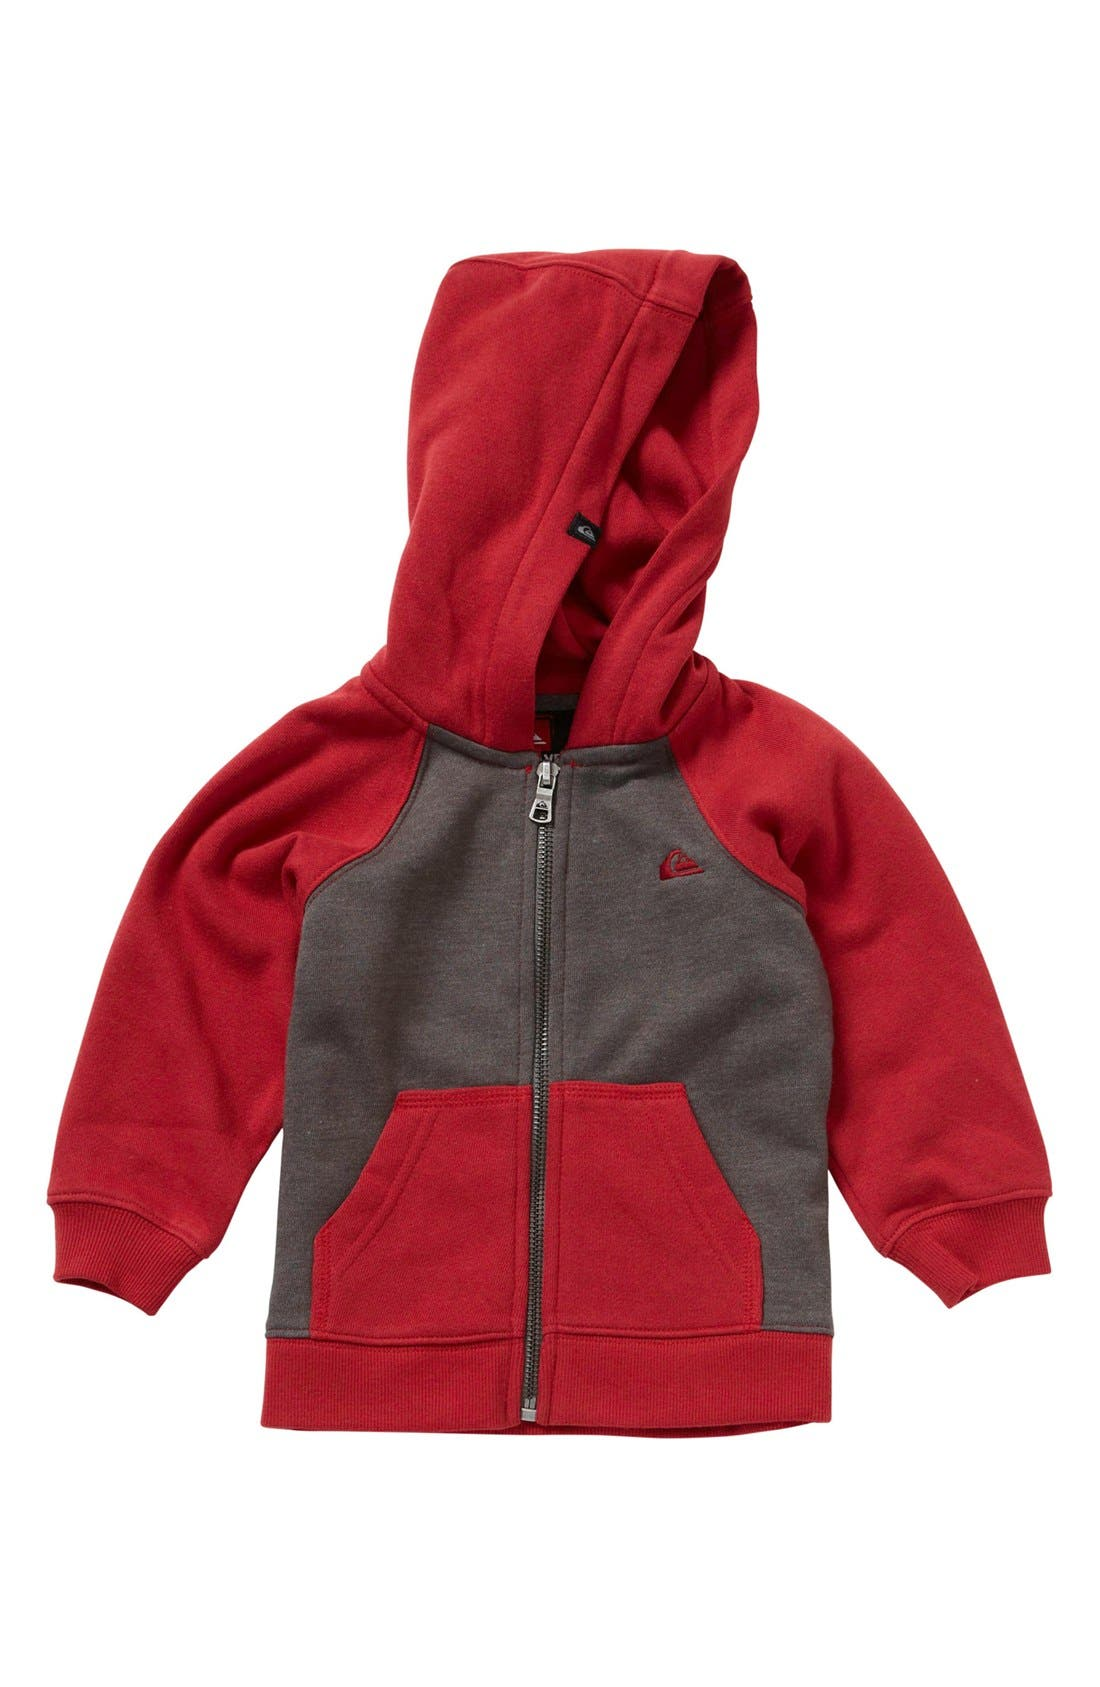 Alternate Image 1 Selected - Quiksilver 'Corbin' Zip Hoodie (Baby Boys)